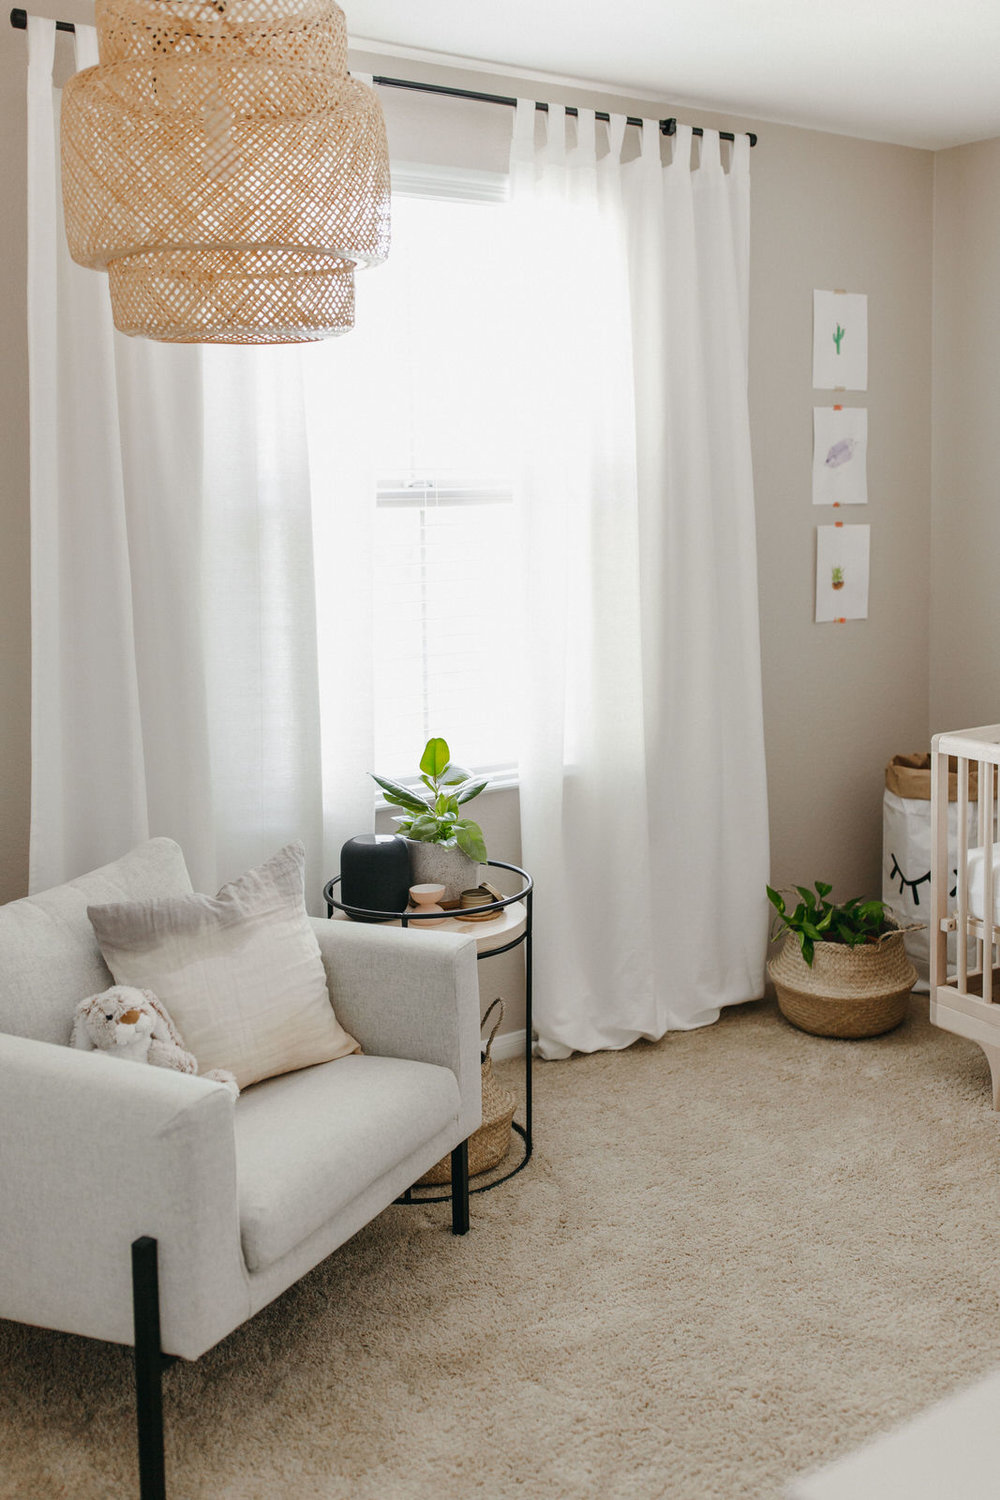 Chloé's Nursery - Baby's Room - V1 (21 of 48).jpg